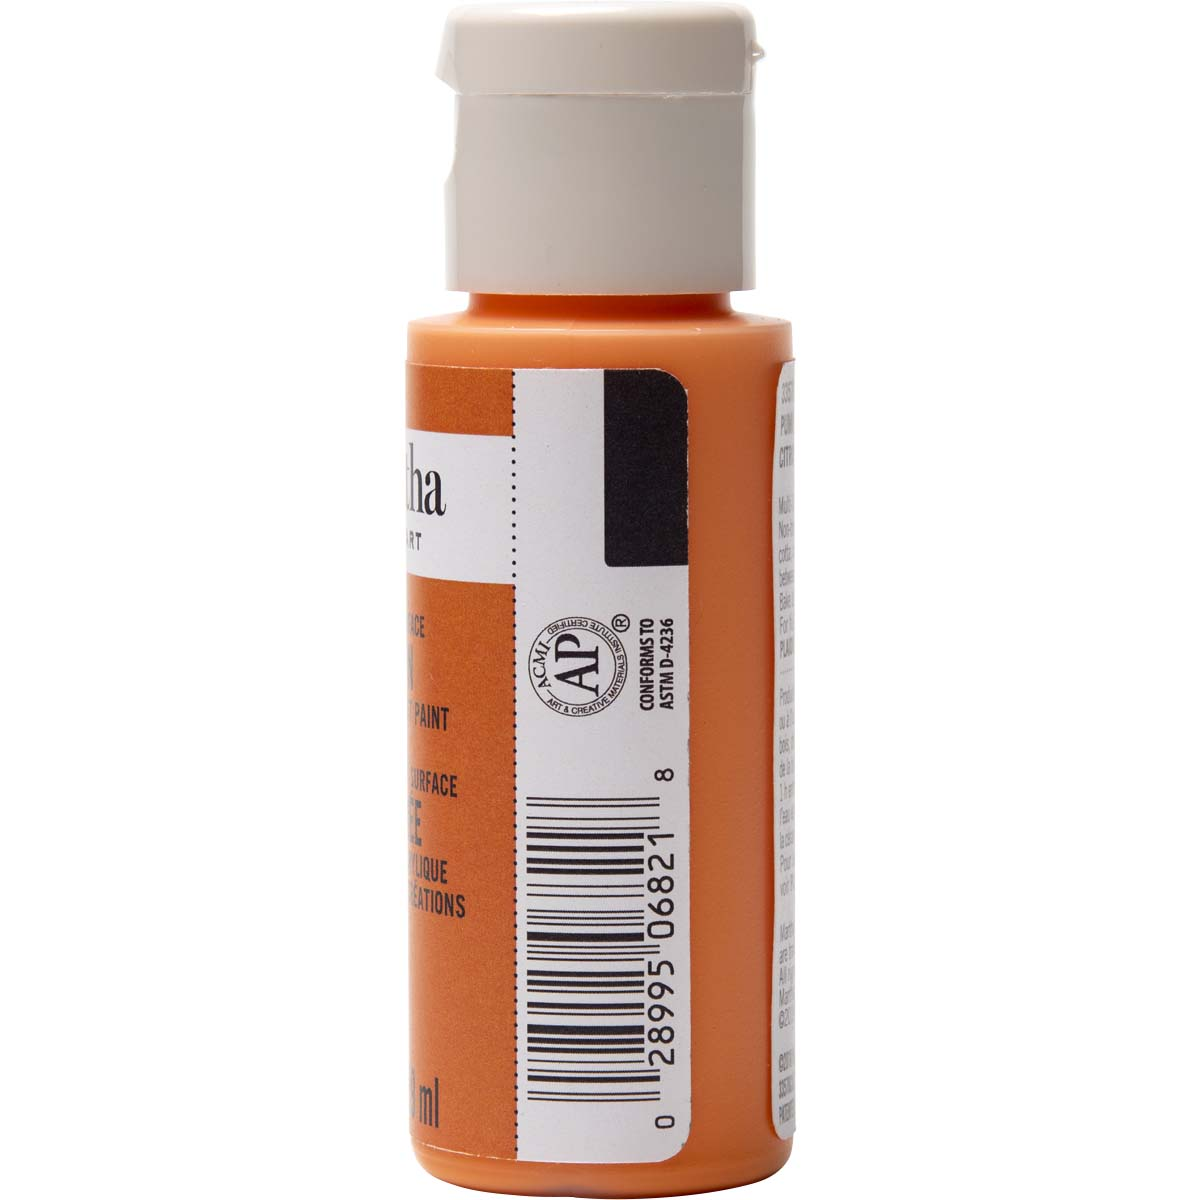 Martha Stewart ® Multi-Surface Satin Acrylic Craft Paint - Pumpkin, 2 oz.